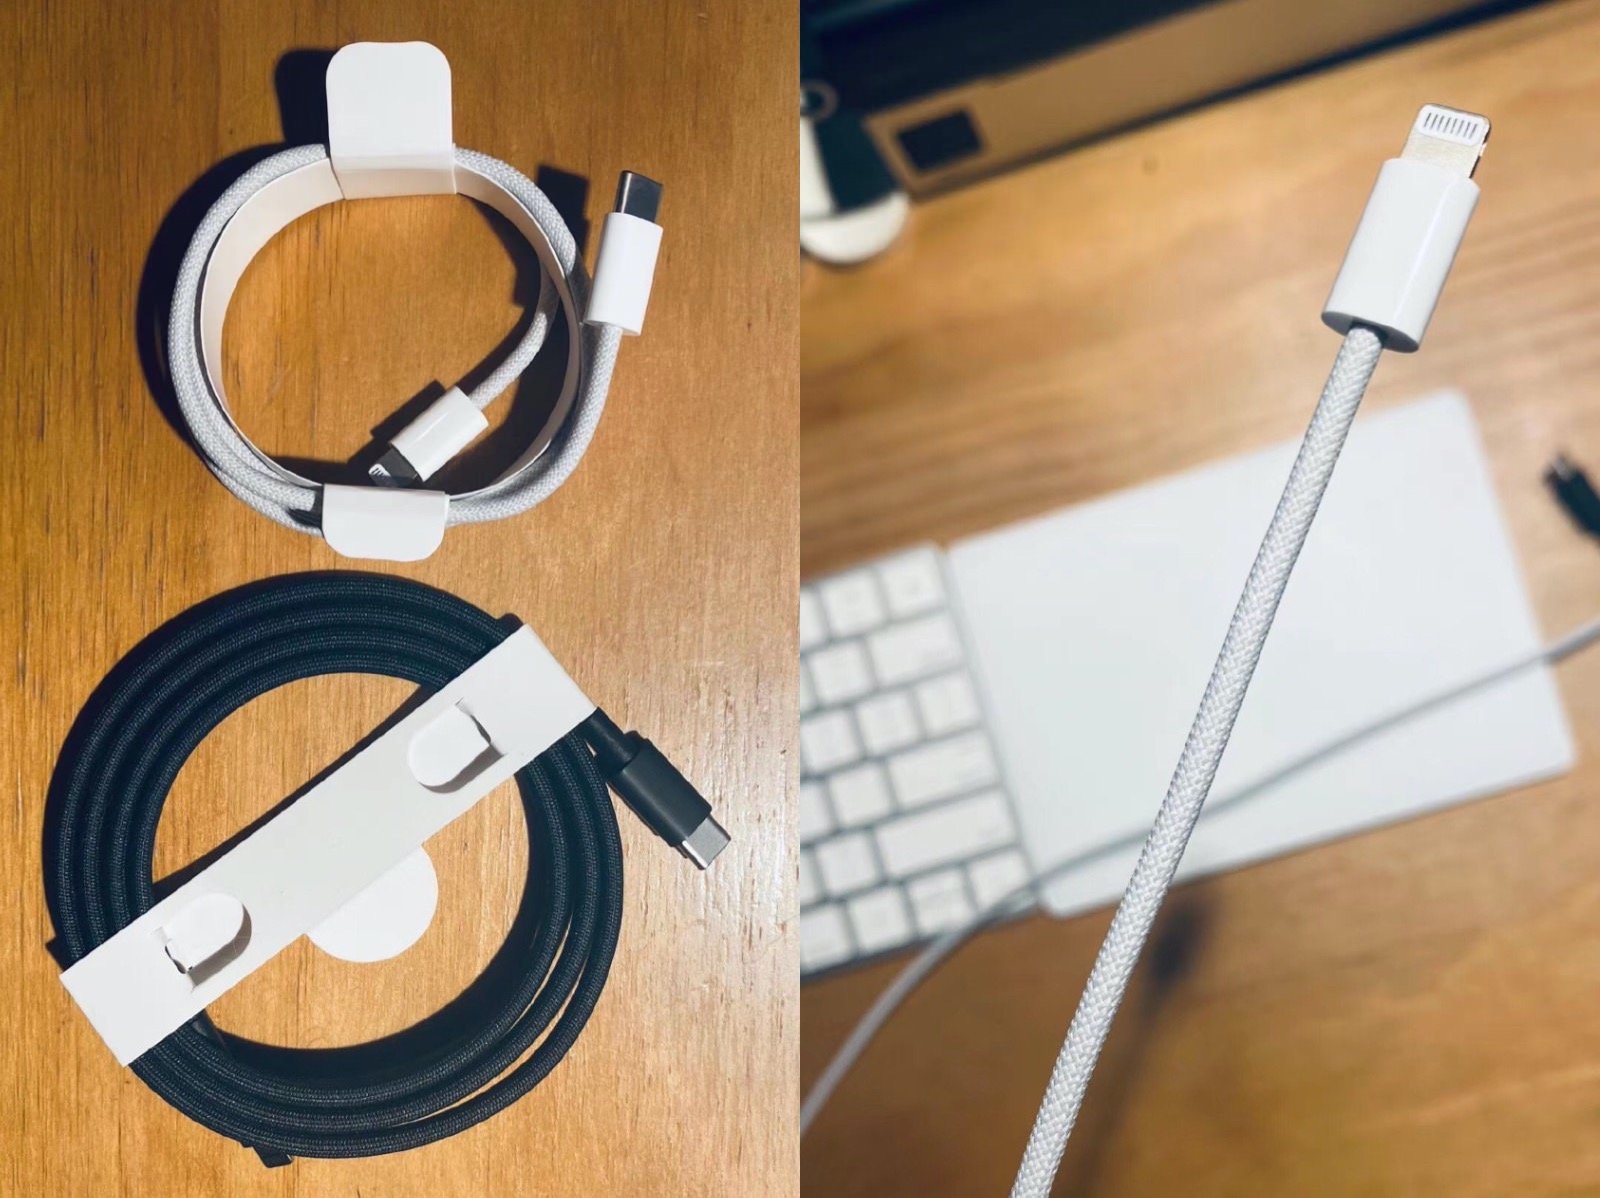 Lightning usbc cable for iphone12